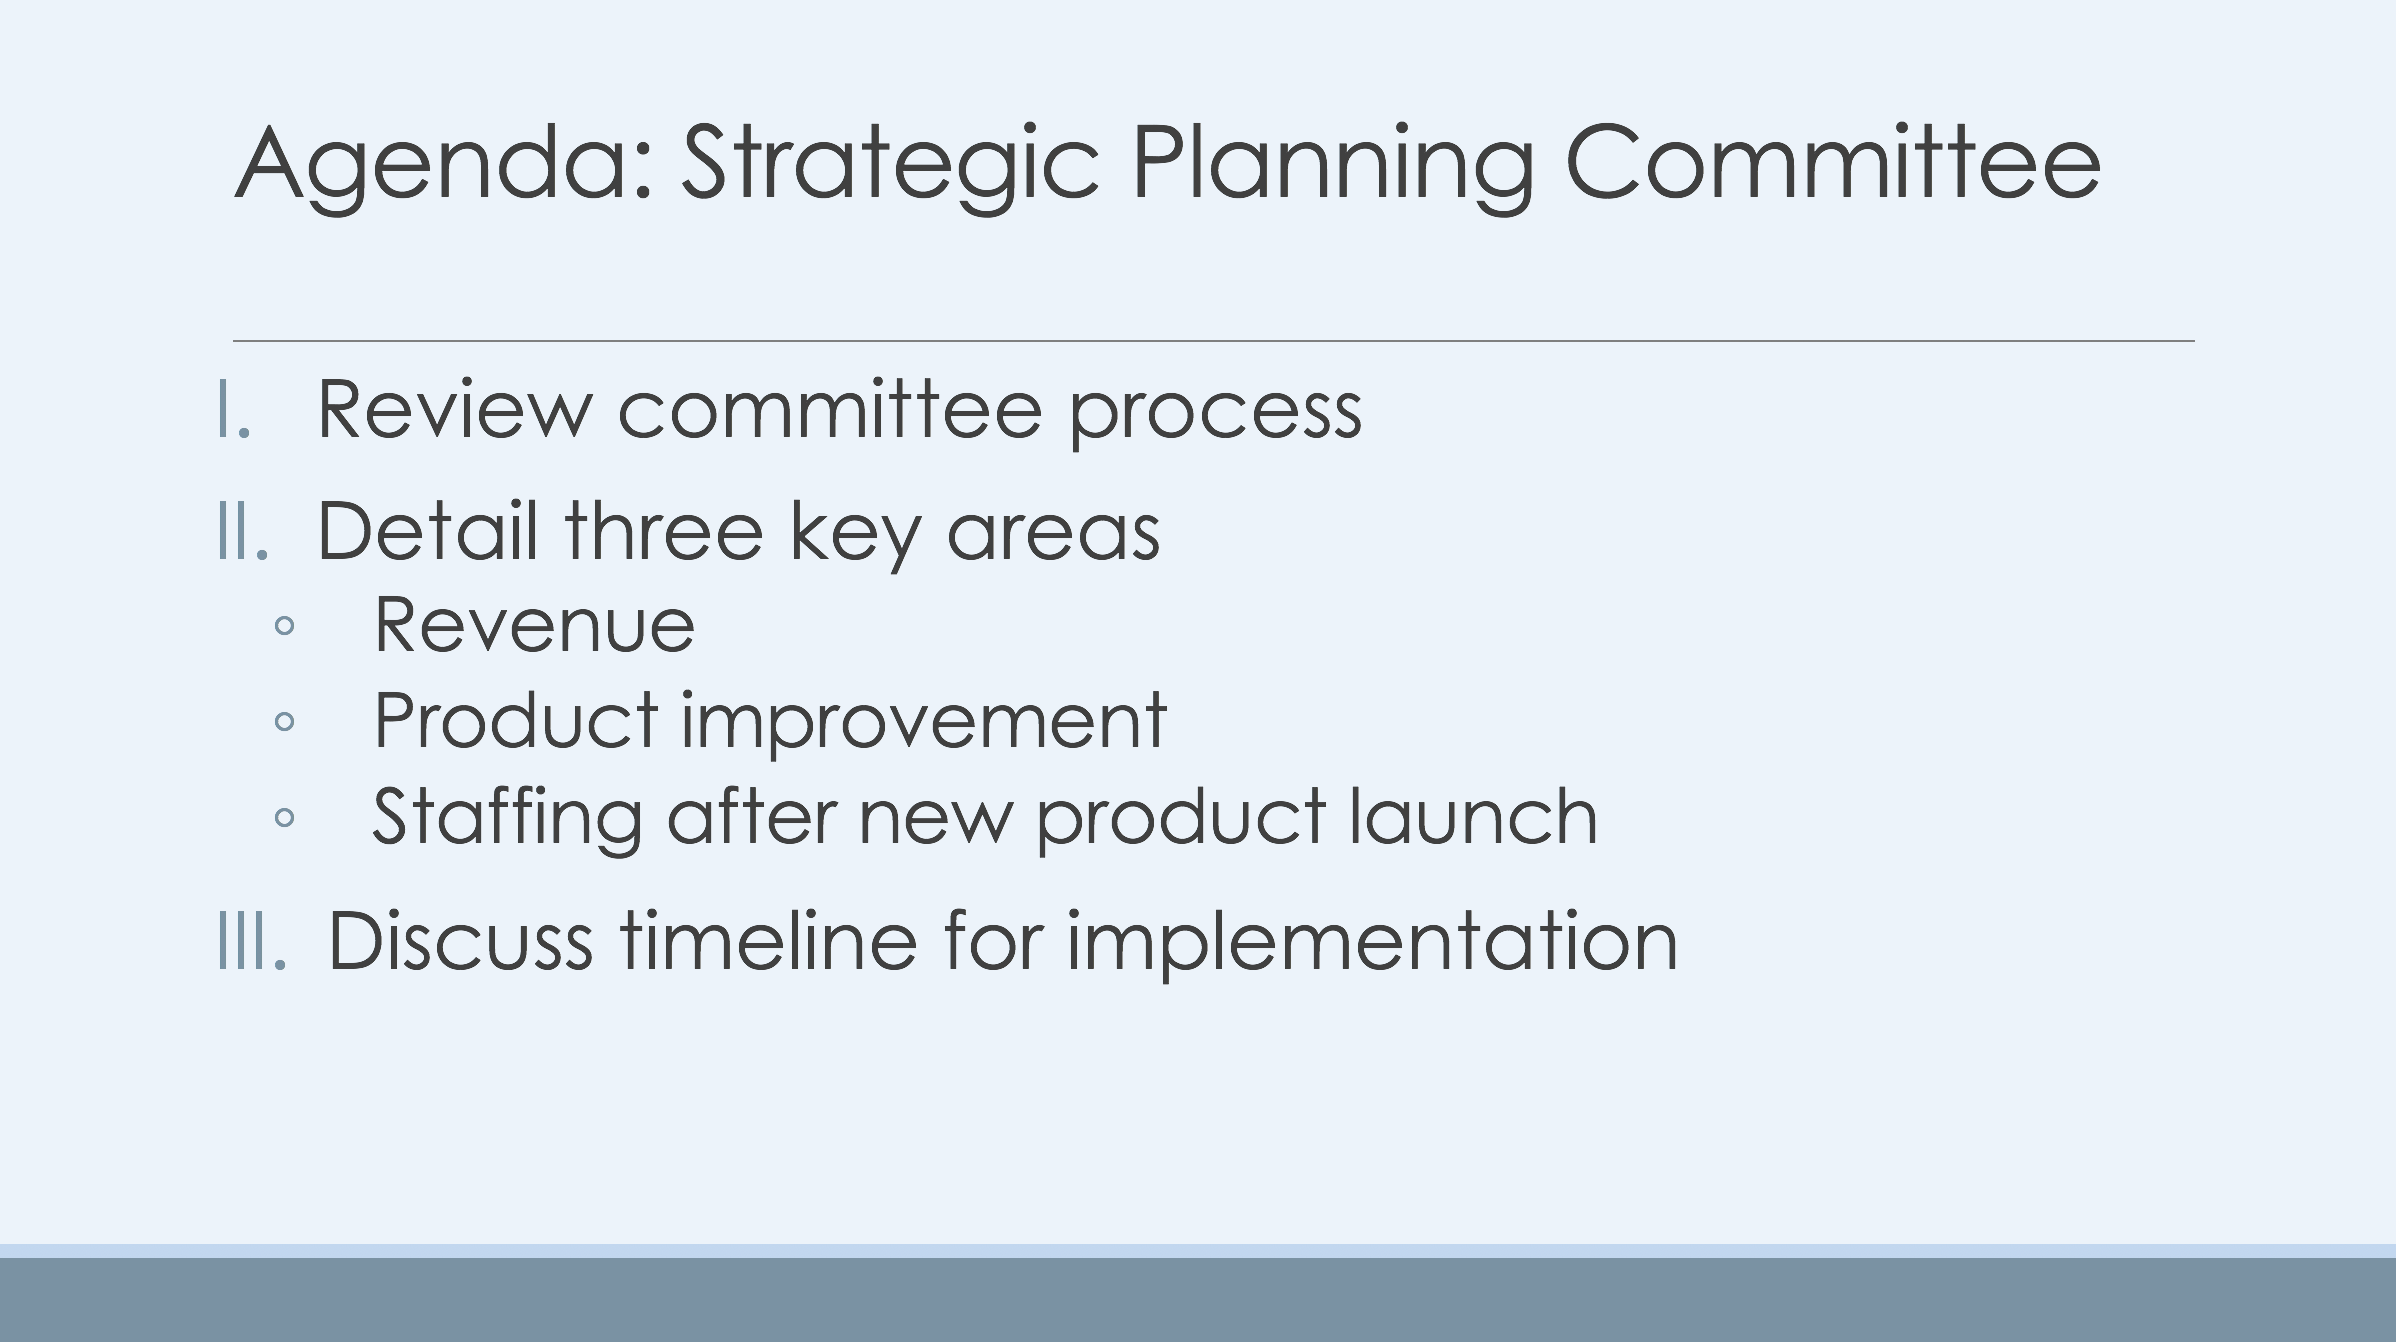 A Sample Outline Slide from a Presentation. The slide has a heading and a numbered list. The heading reads Agenda: Strategic Planning Committee. The numbered list has three items. The first item reads Review Committee process. The second item reads Detail three key areas of focus. The second item then has three sub points: the first sub-point reads Revenue. The second sub-point reads product improvement. The third sub-point reads staffing after new product launch. The third item of the top-level list reads discuss timeline for implementation.